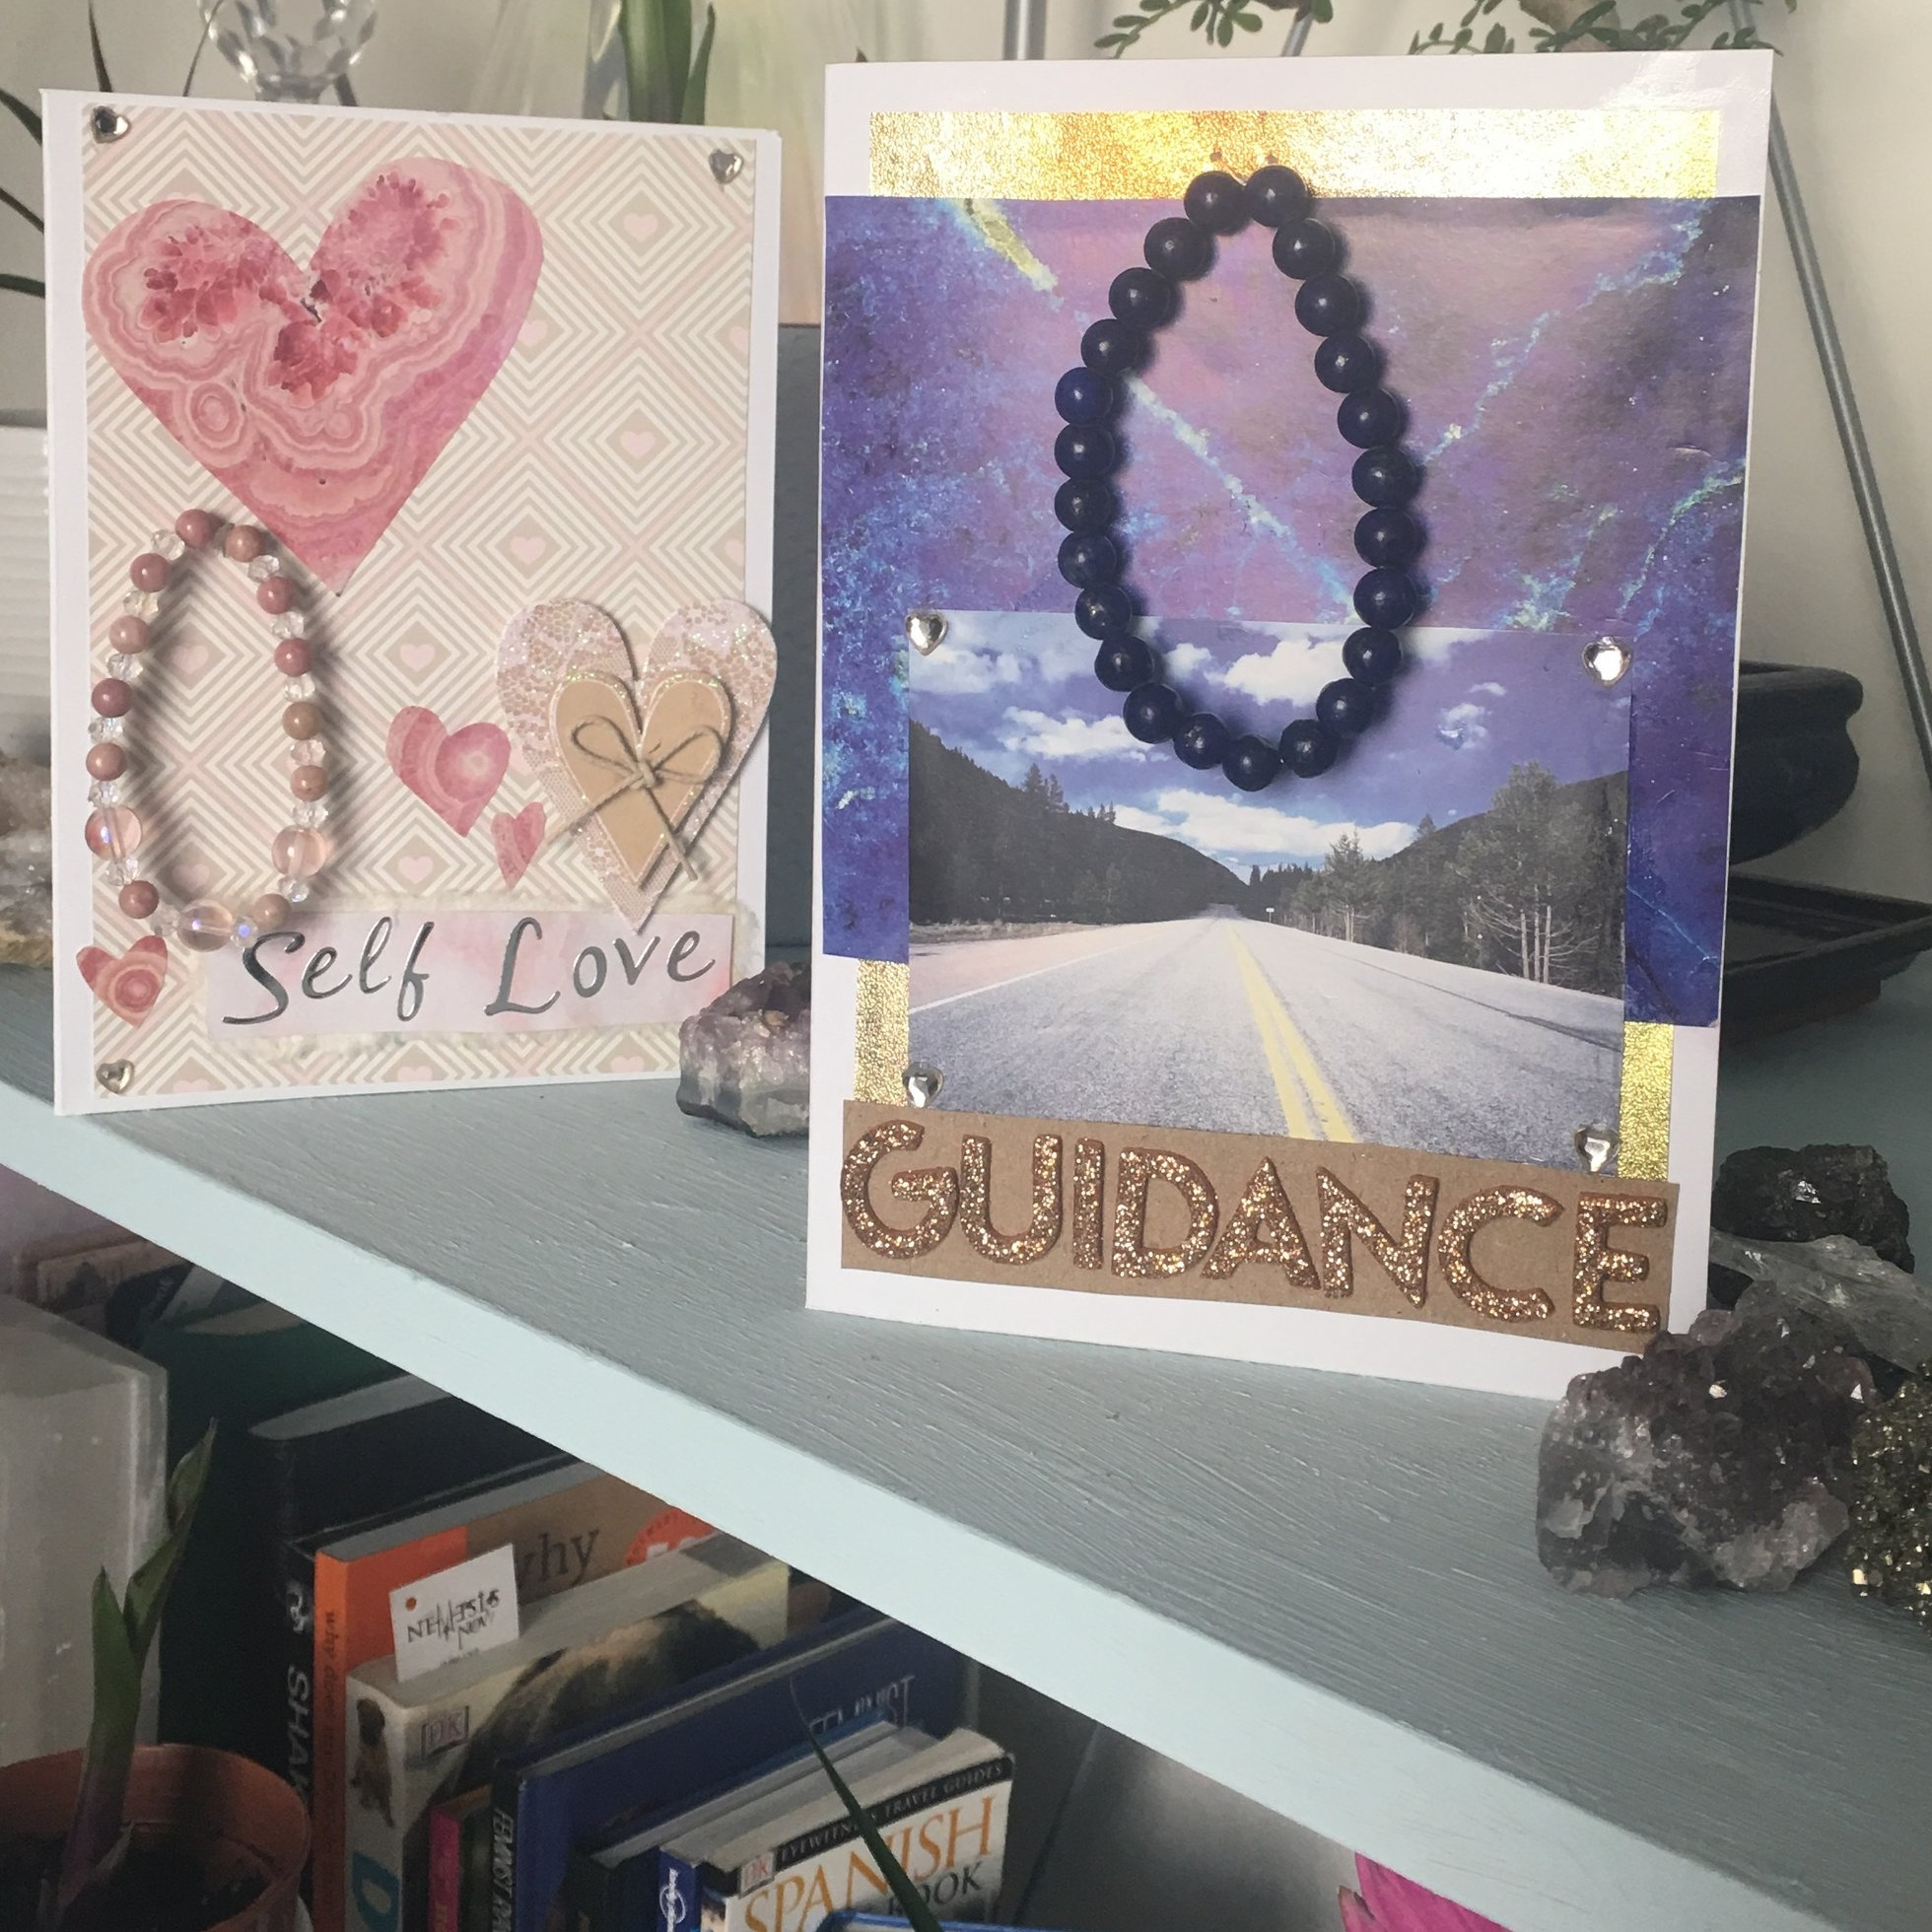 to include a handwritten message & post the card directly to your recipient, please get in touch  - You can e-mail us via our contact page or on instagram @thegemstoners